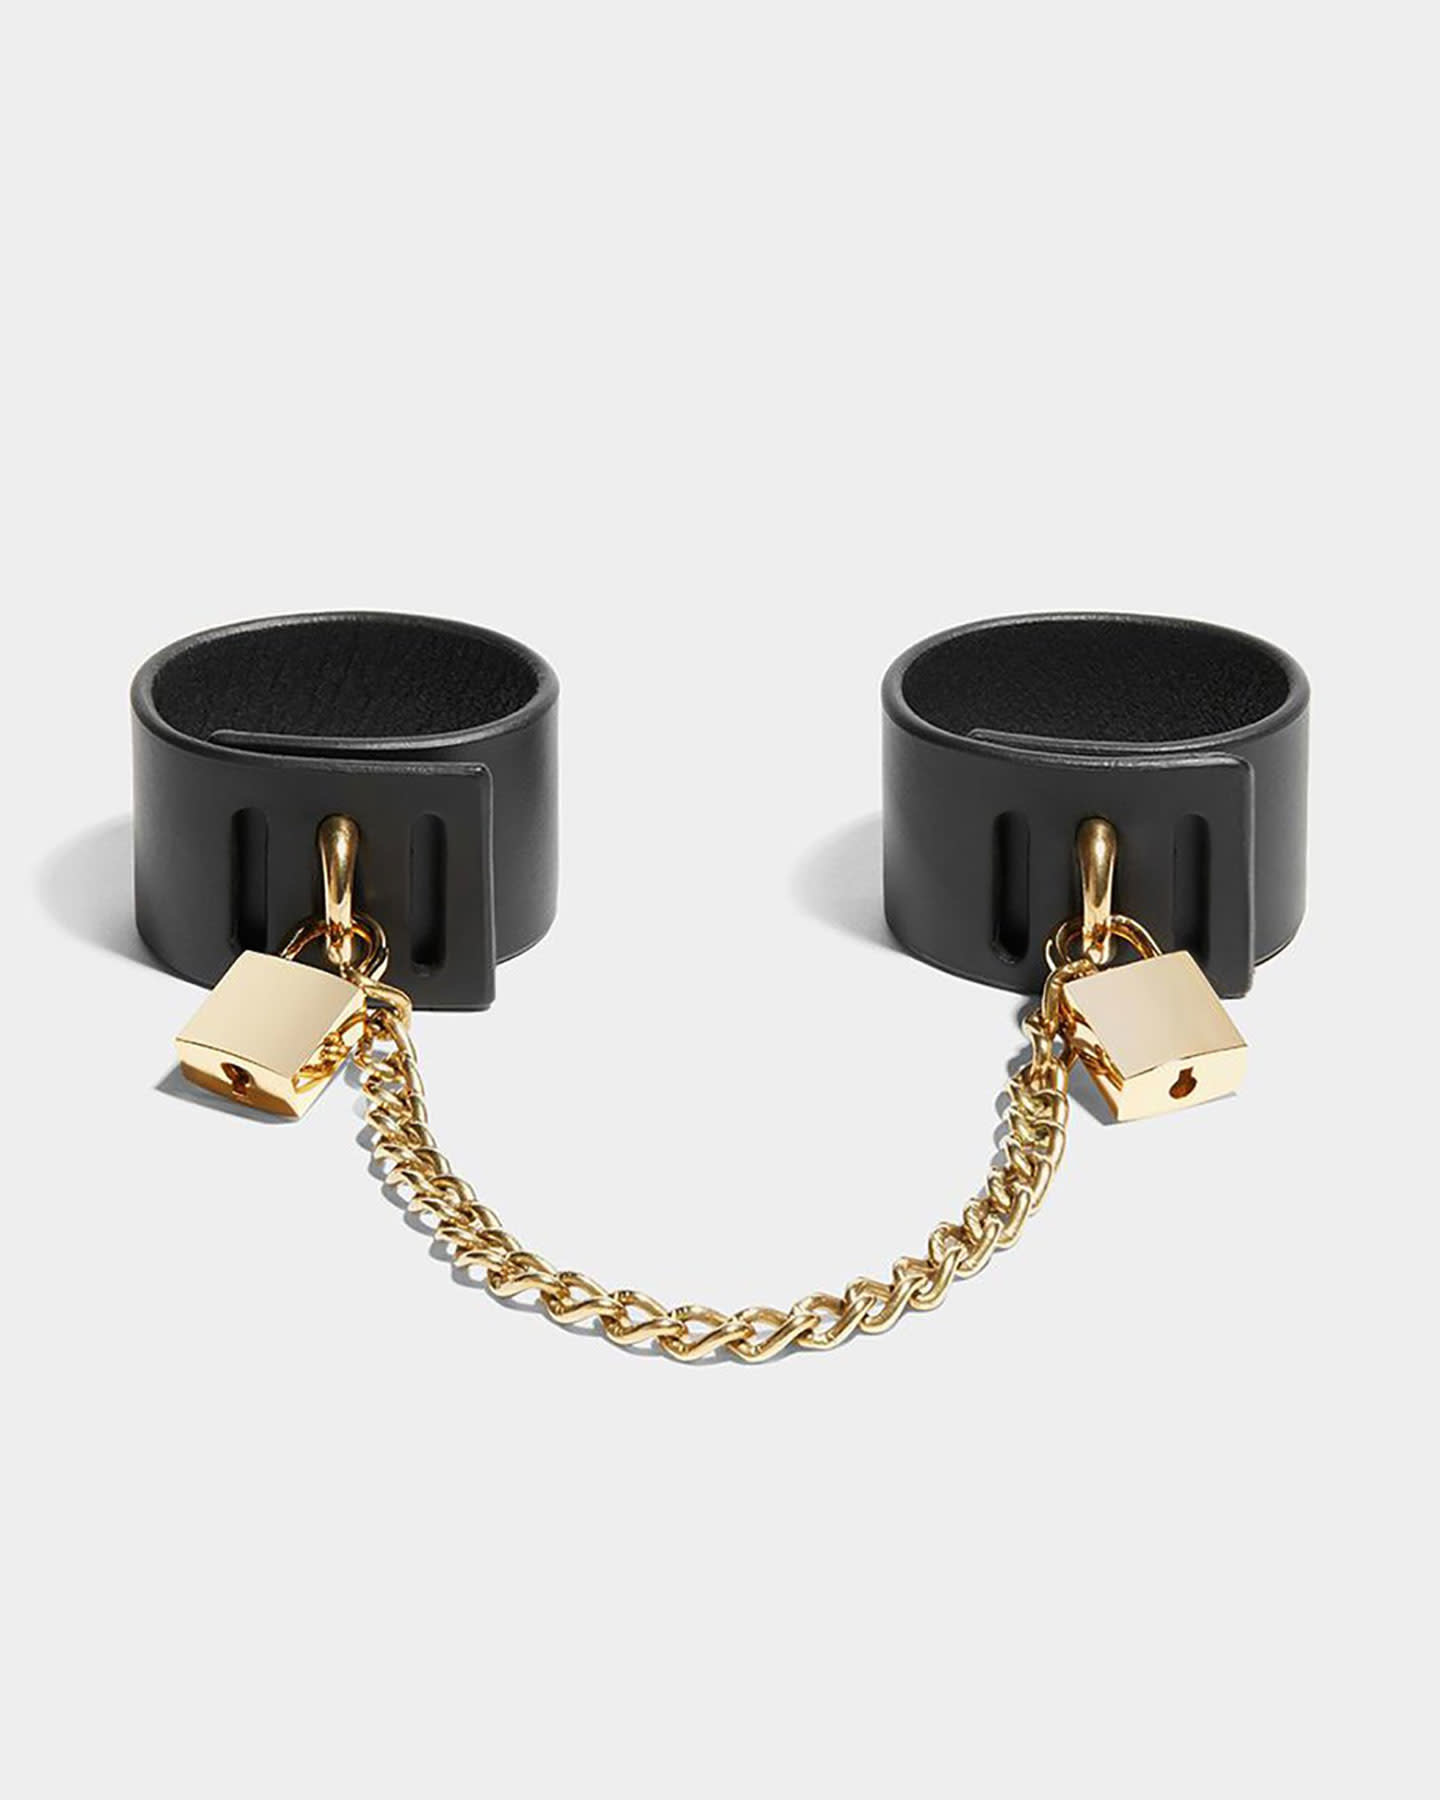 PADLOCK CUFFS WITH CHAIN - BLACK/GOLD